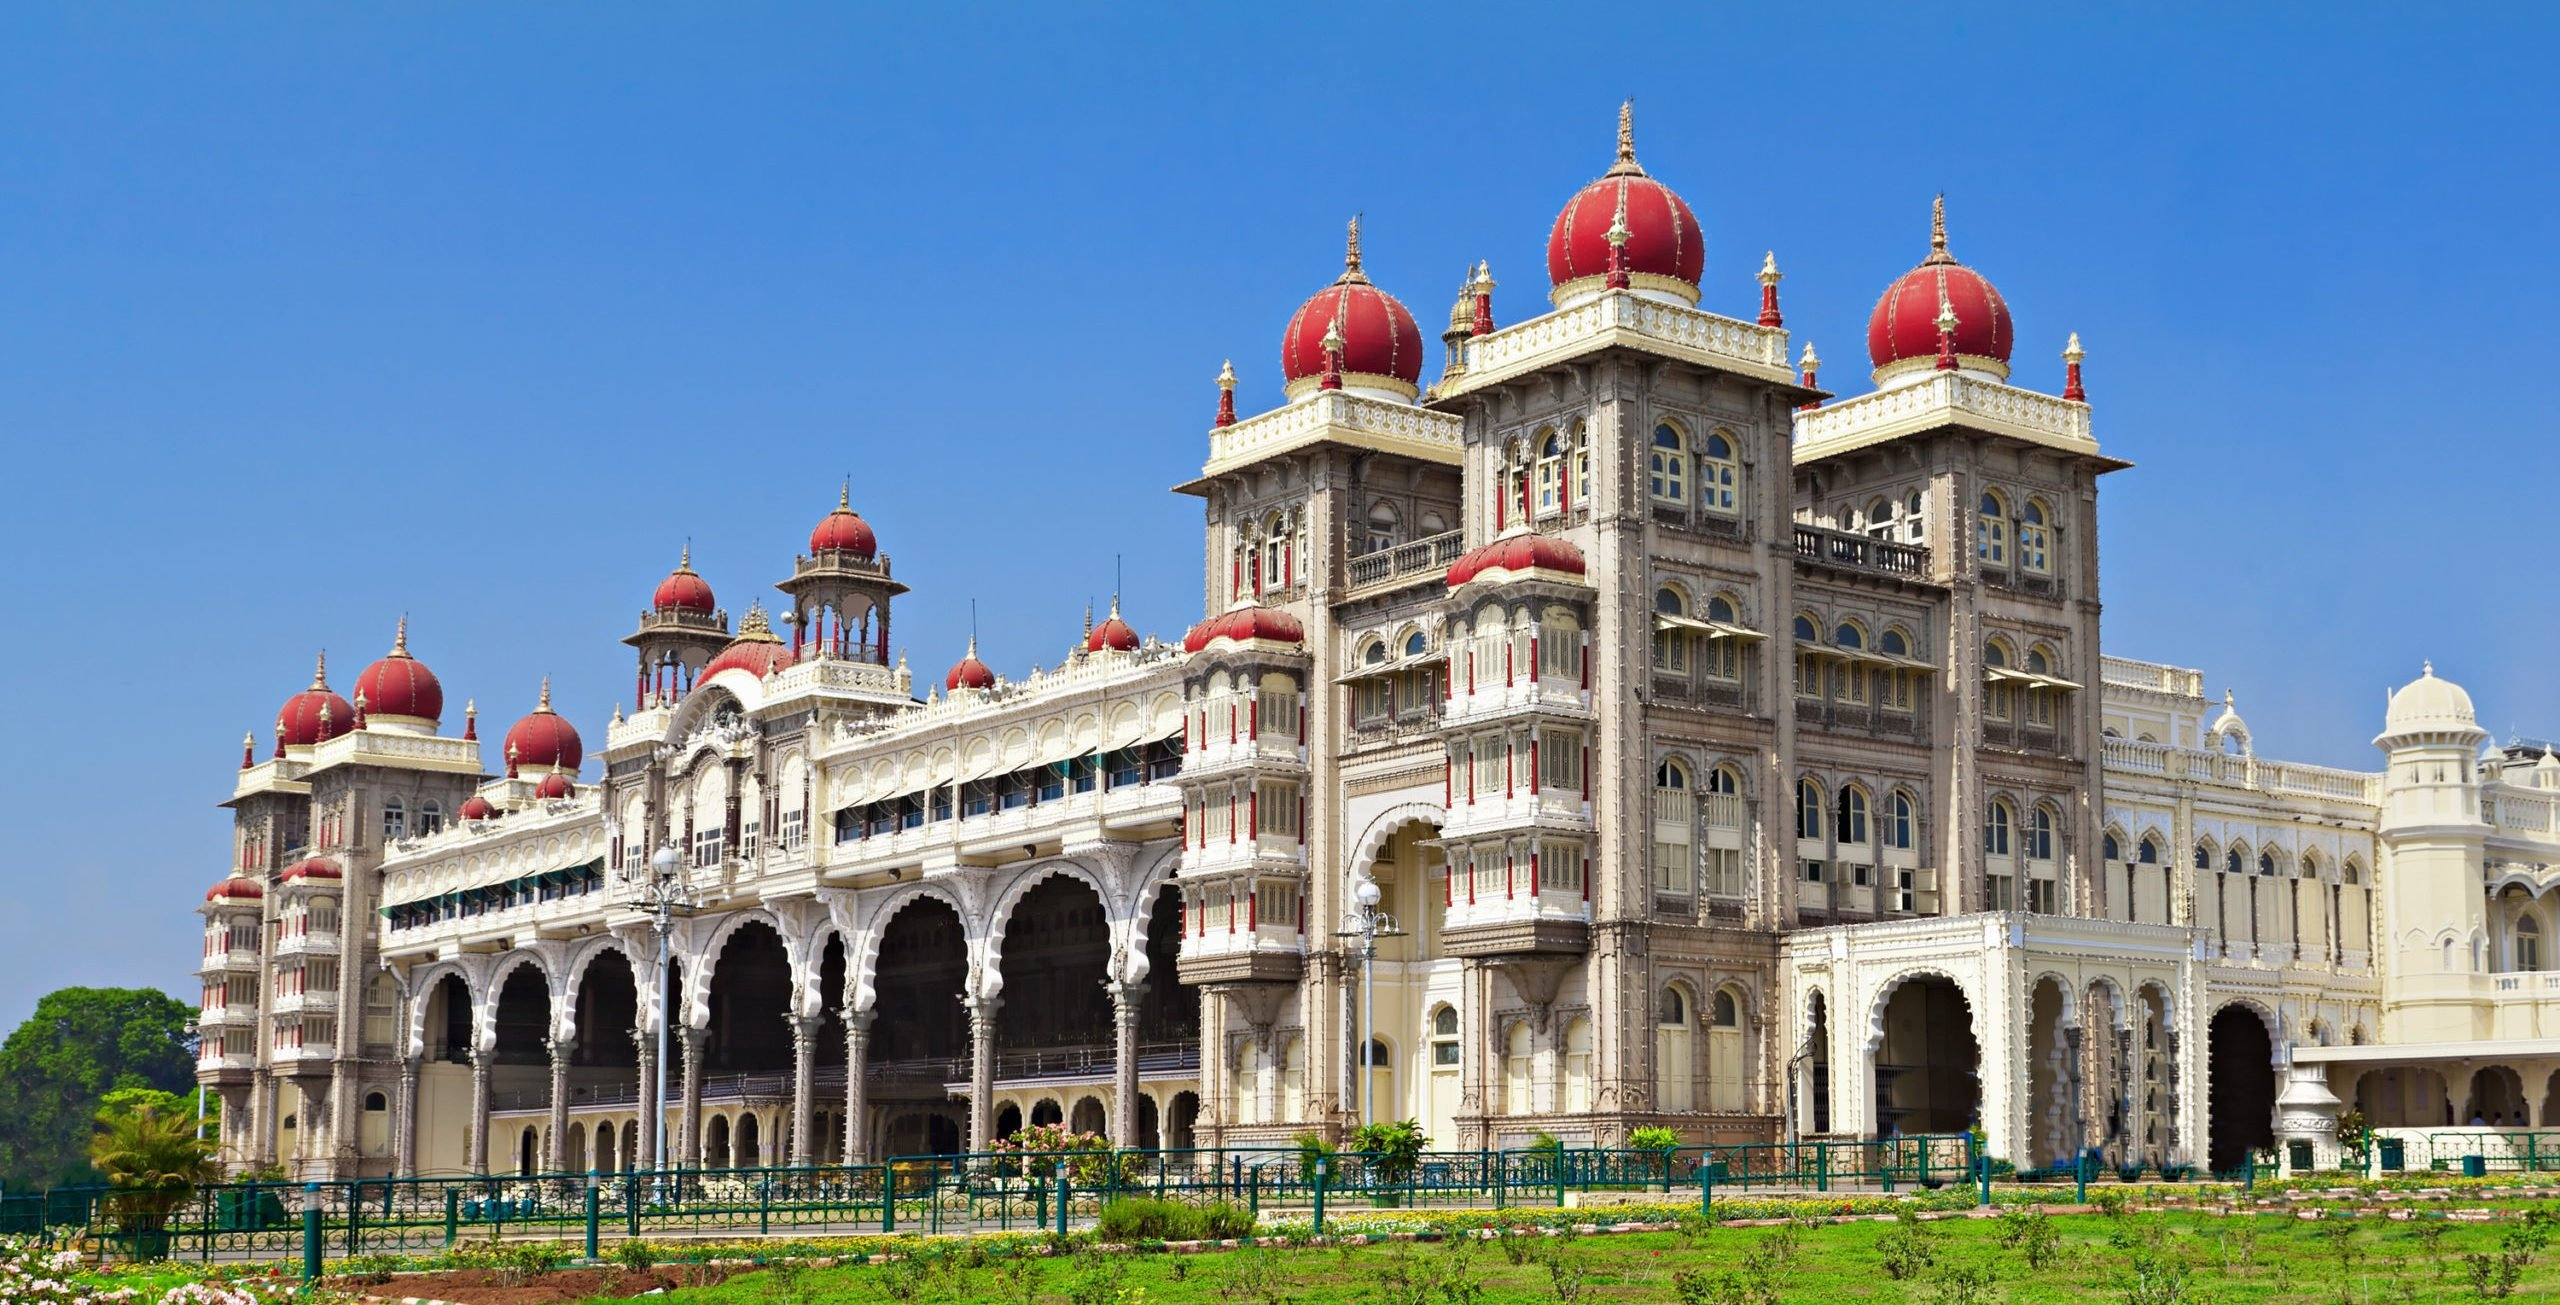 Discover The Mysore Royal Palace On The Royal Kingdom Of Mysore Tour From Bangalore